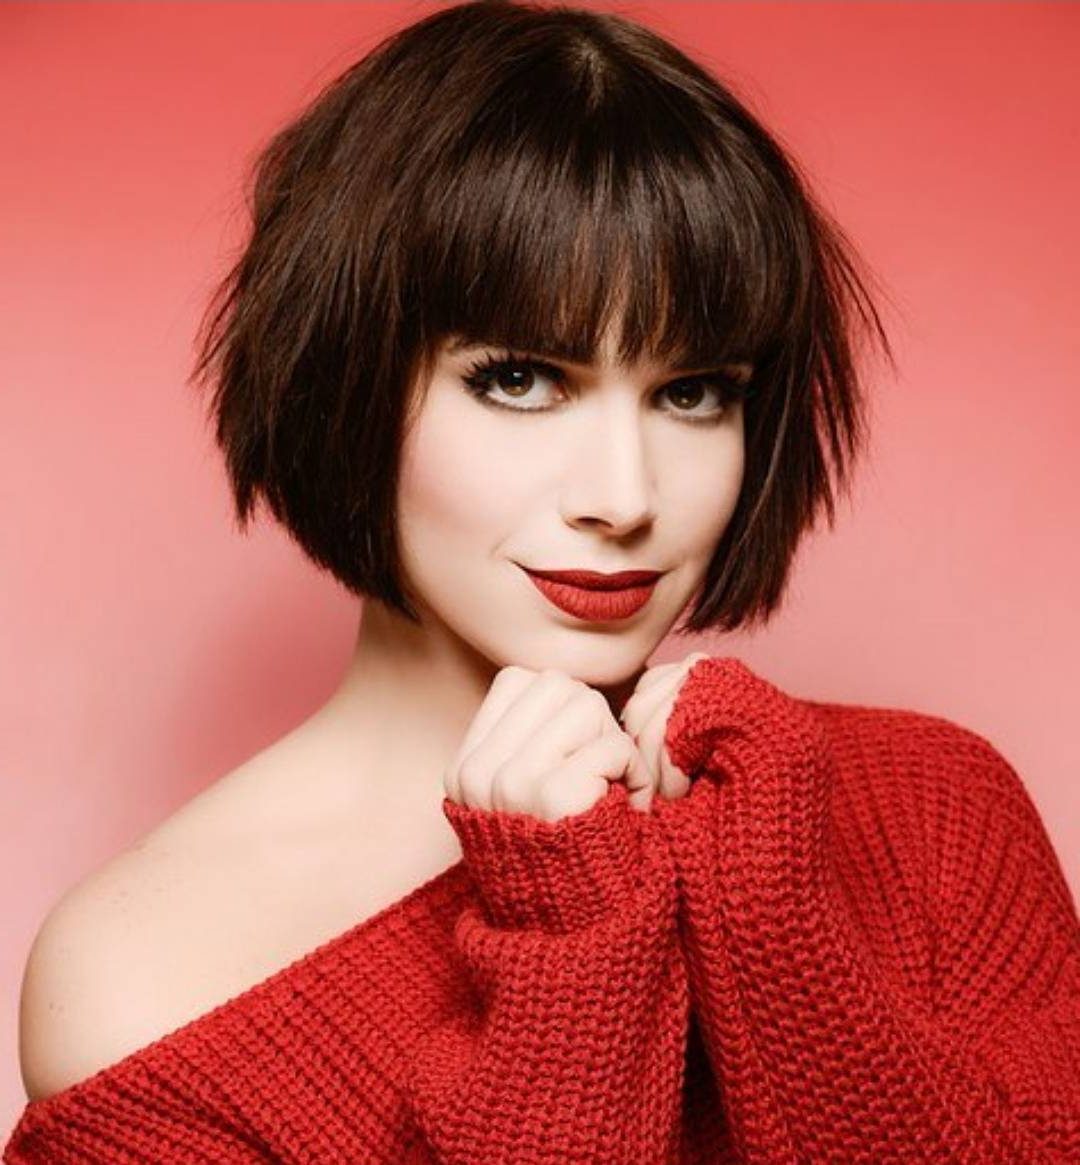 10 Chic Short Bob Haircuts That Balance Your Face Shape! Intended For Hort Bob Haircuts With Bangs (Gallery 1 of 20)